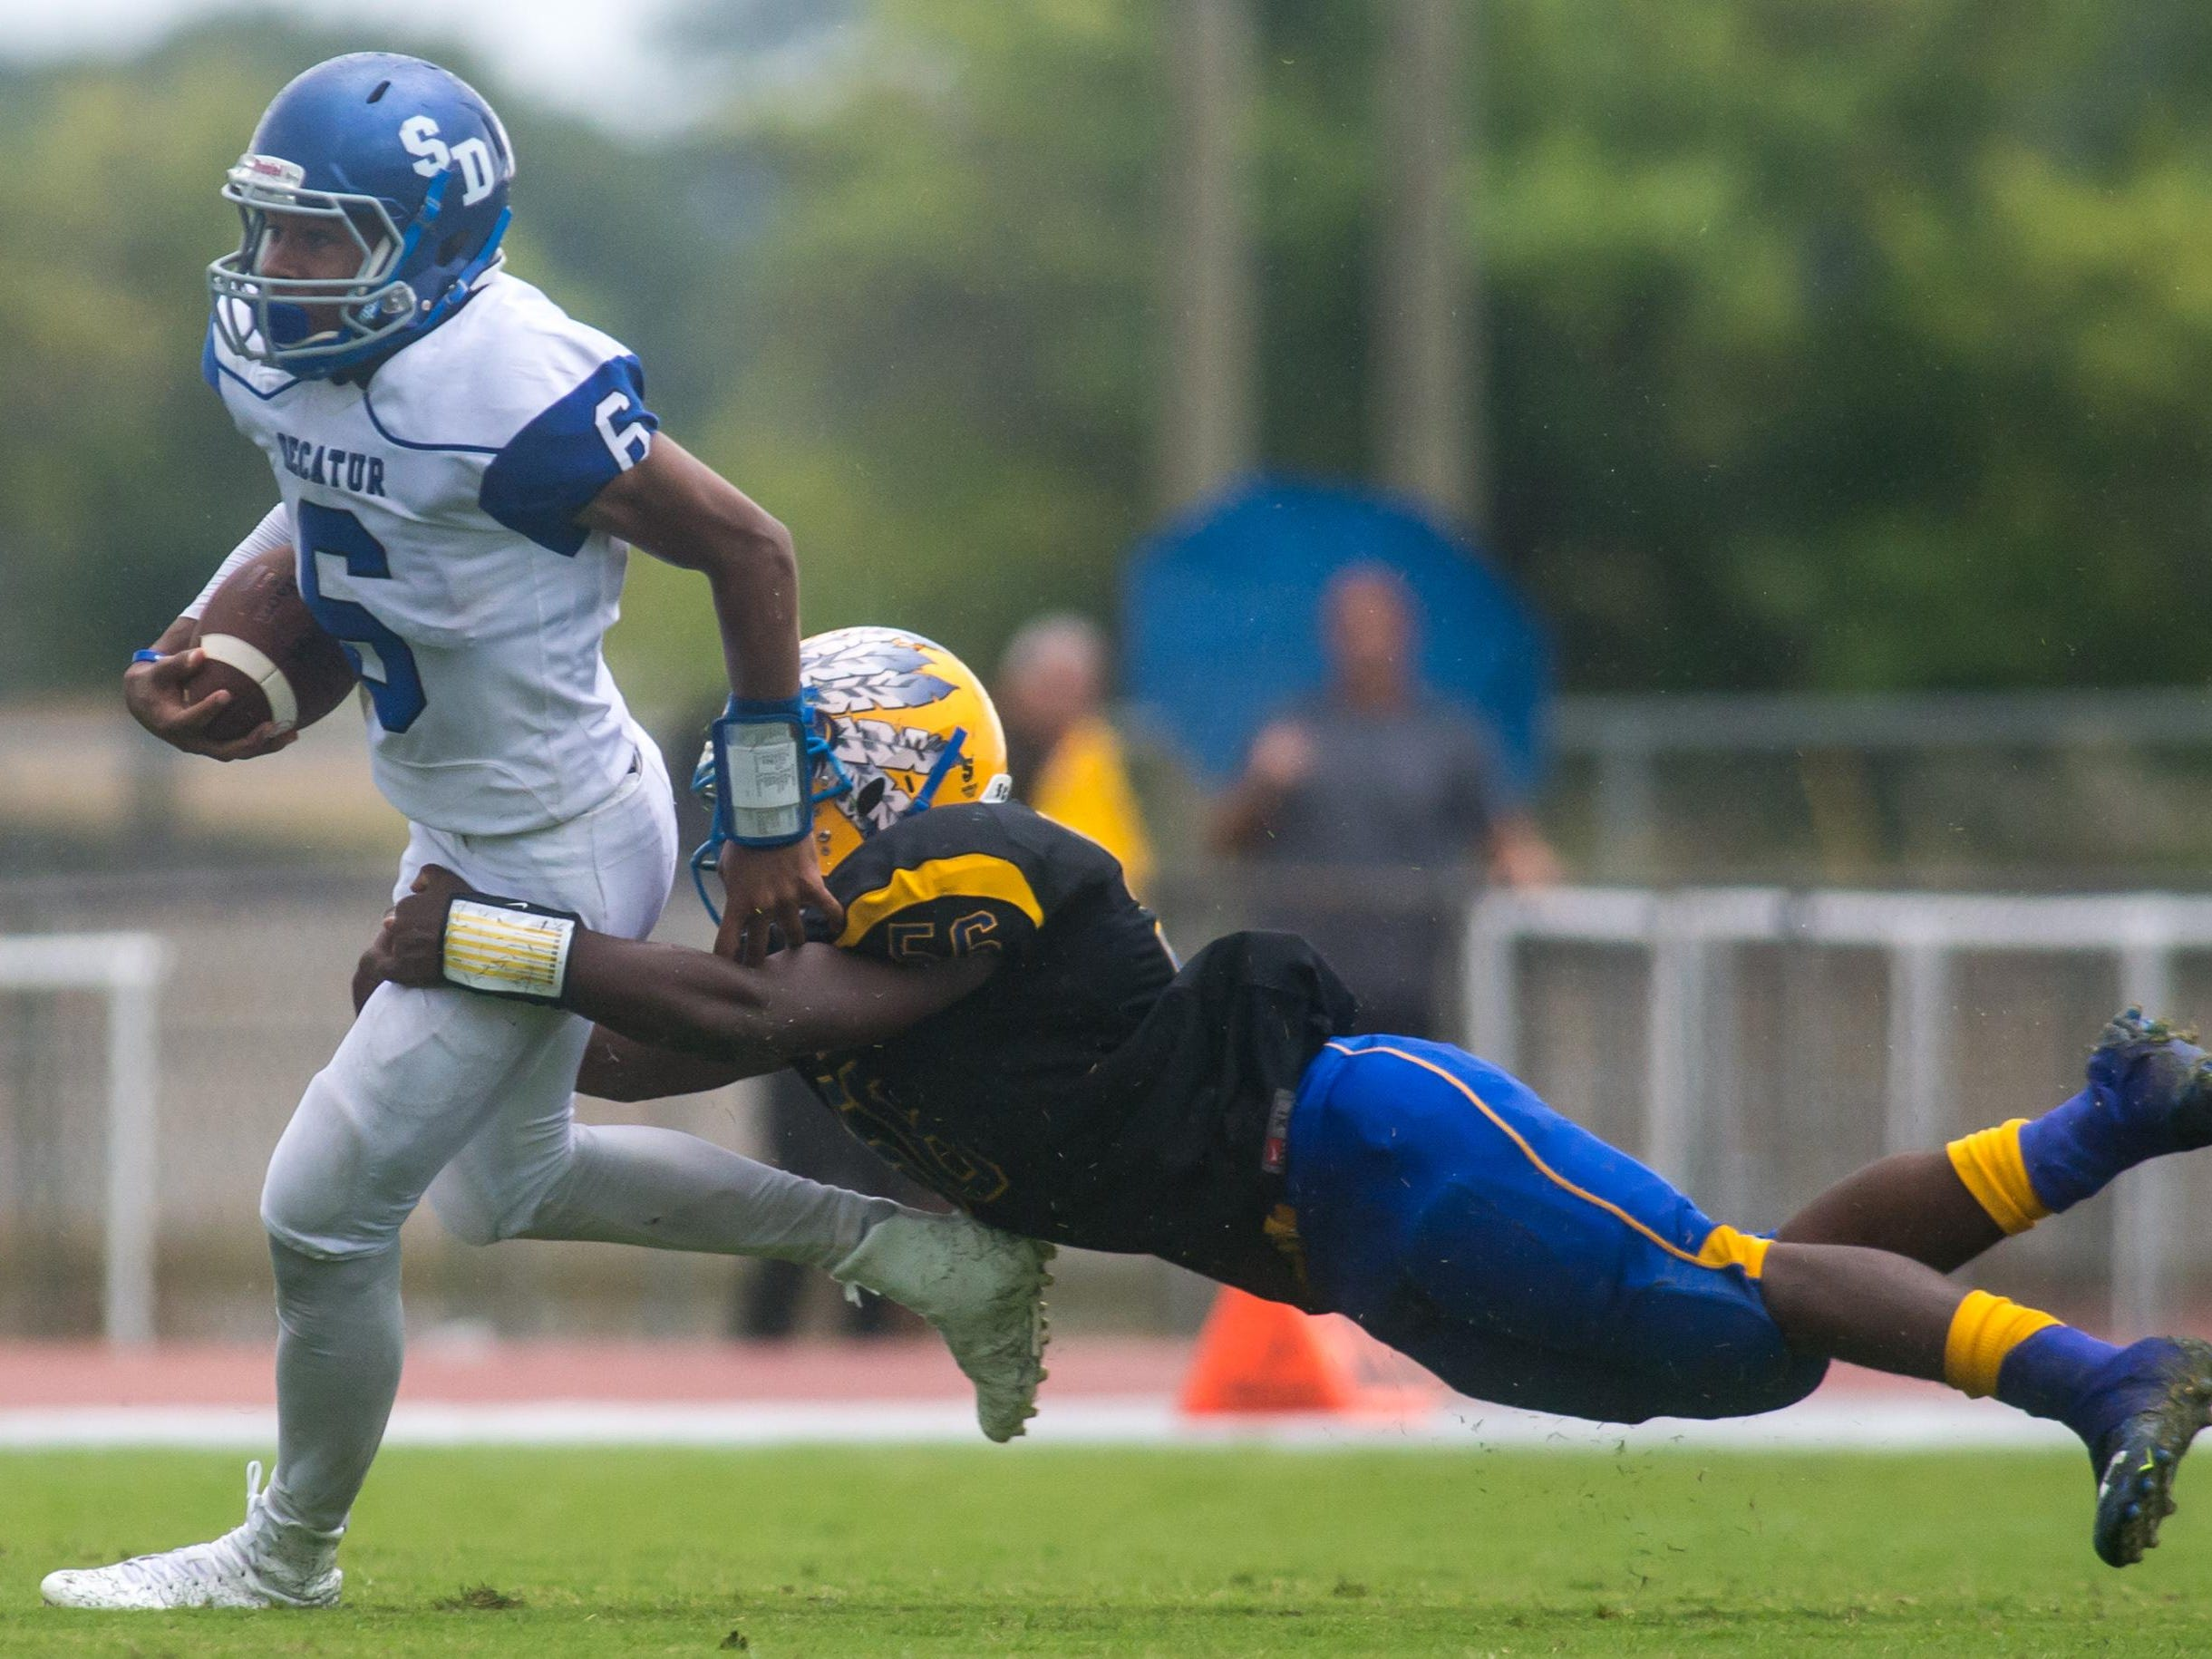 Stephen Decatur quarterback Darion McKenzie (6) rushes against Wicomico High on Saturday afternoon at Wicomico County Stadium.